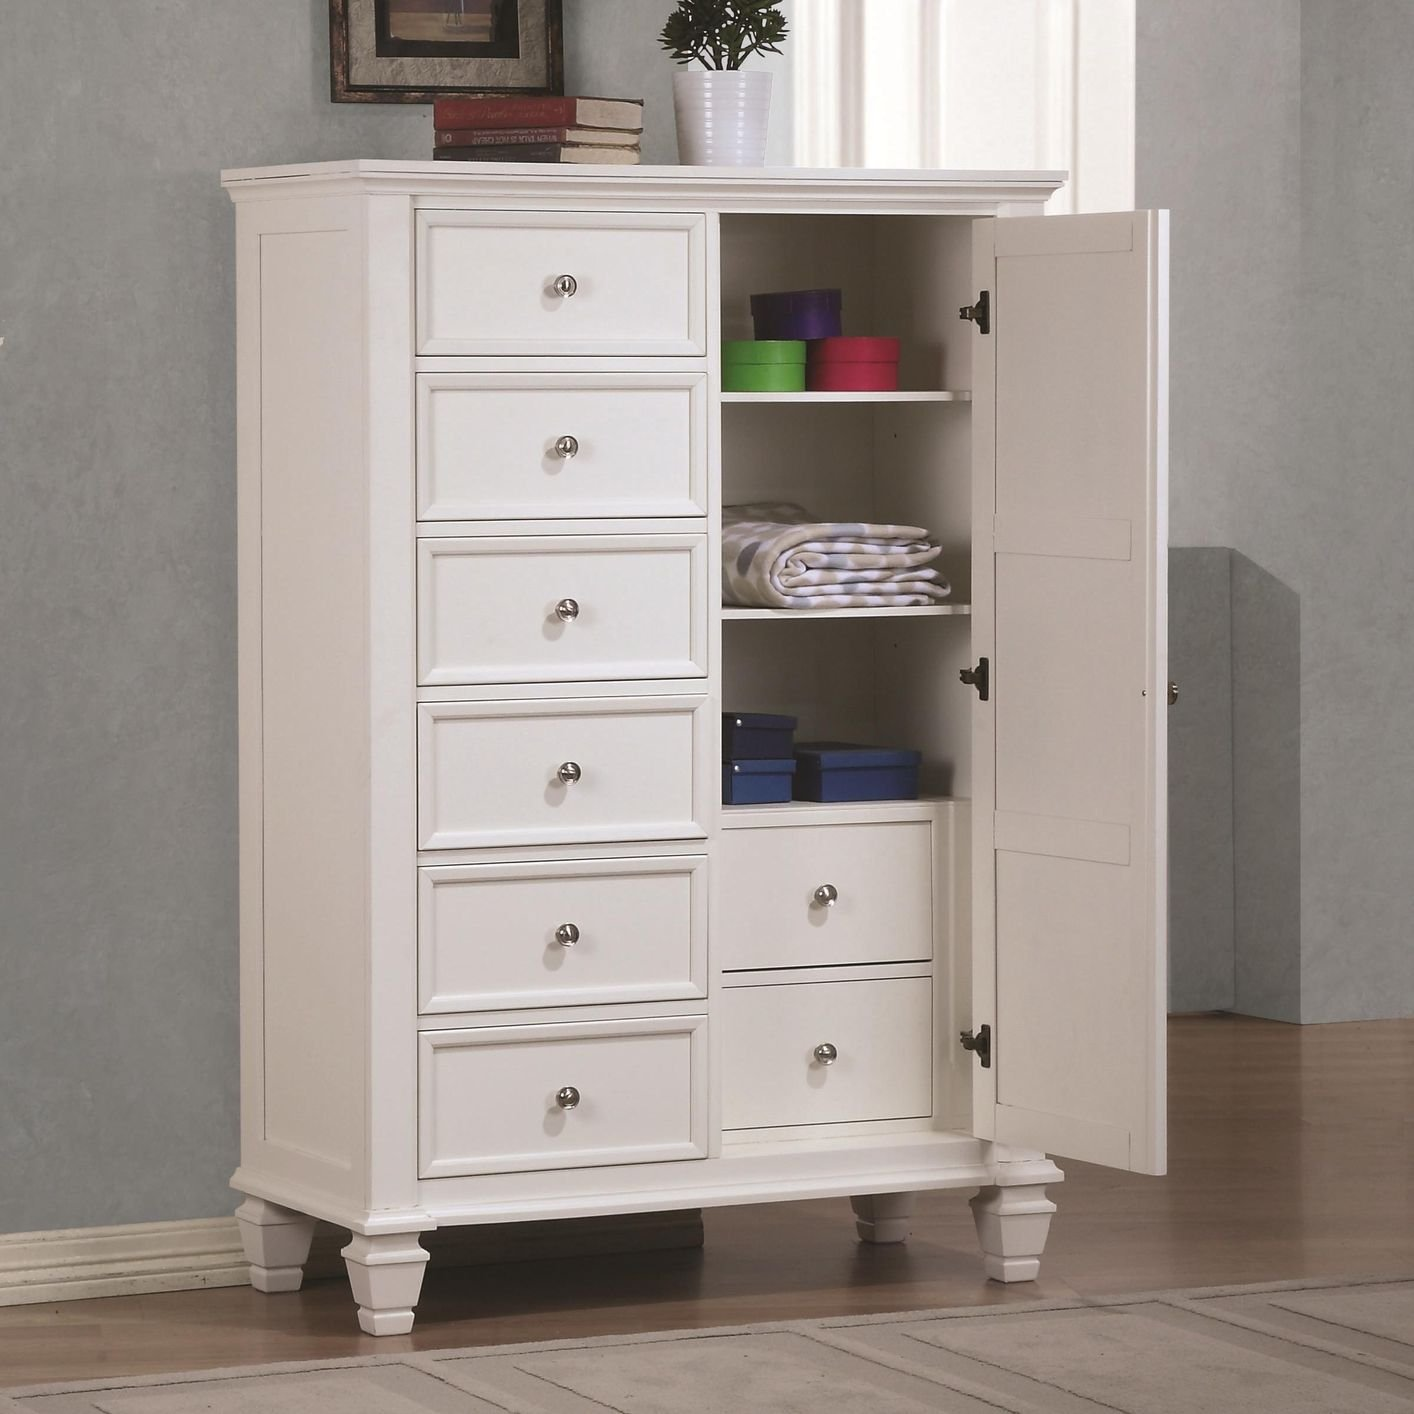 Chest of drawers white wooden chest of drawers PENRDHZ